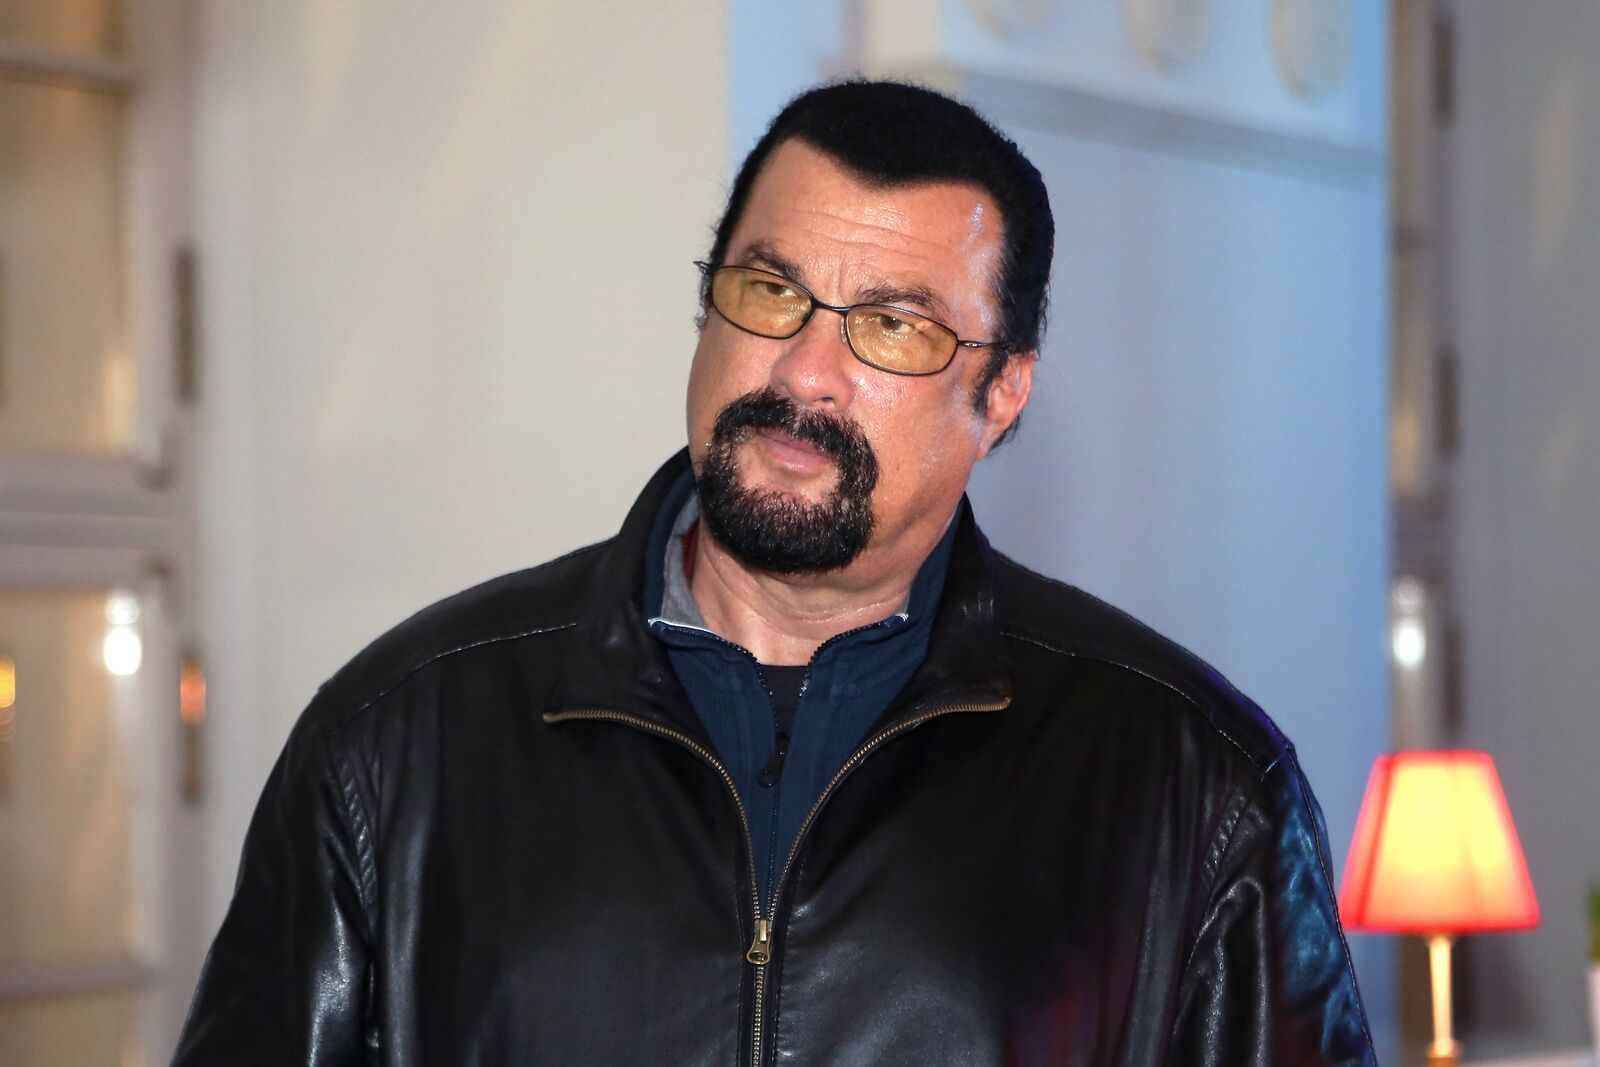 Actor Steven Seagal attends the Mercedes-Benz Fashion Week Russia S/S 2014 on October 28, 2013 in Moscow, Russia | Photo: Getty Images